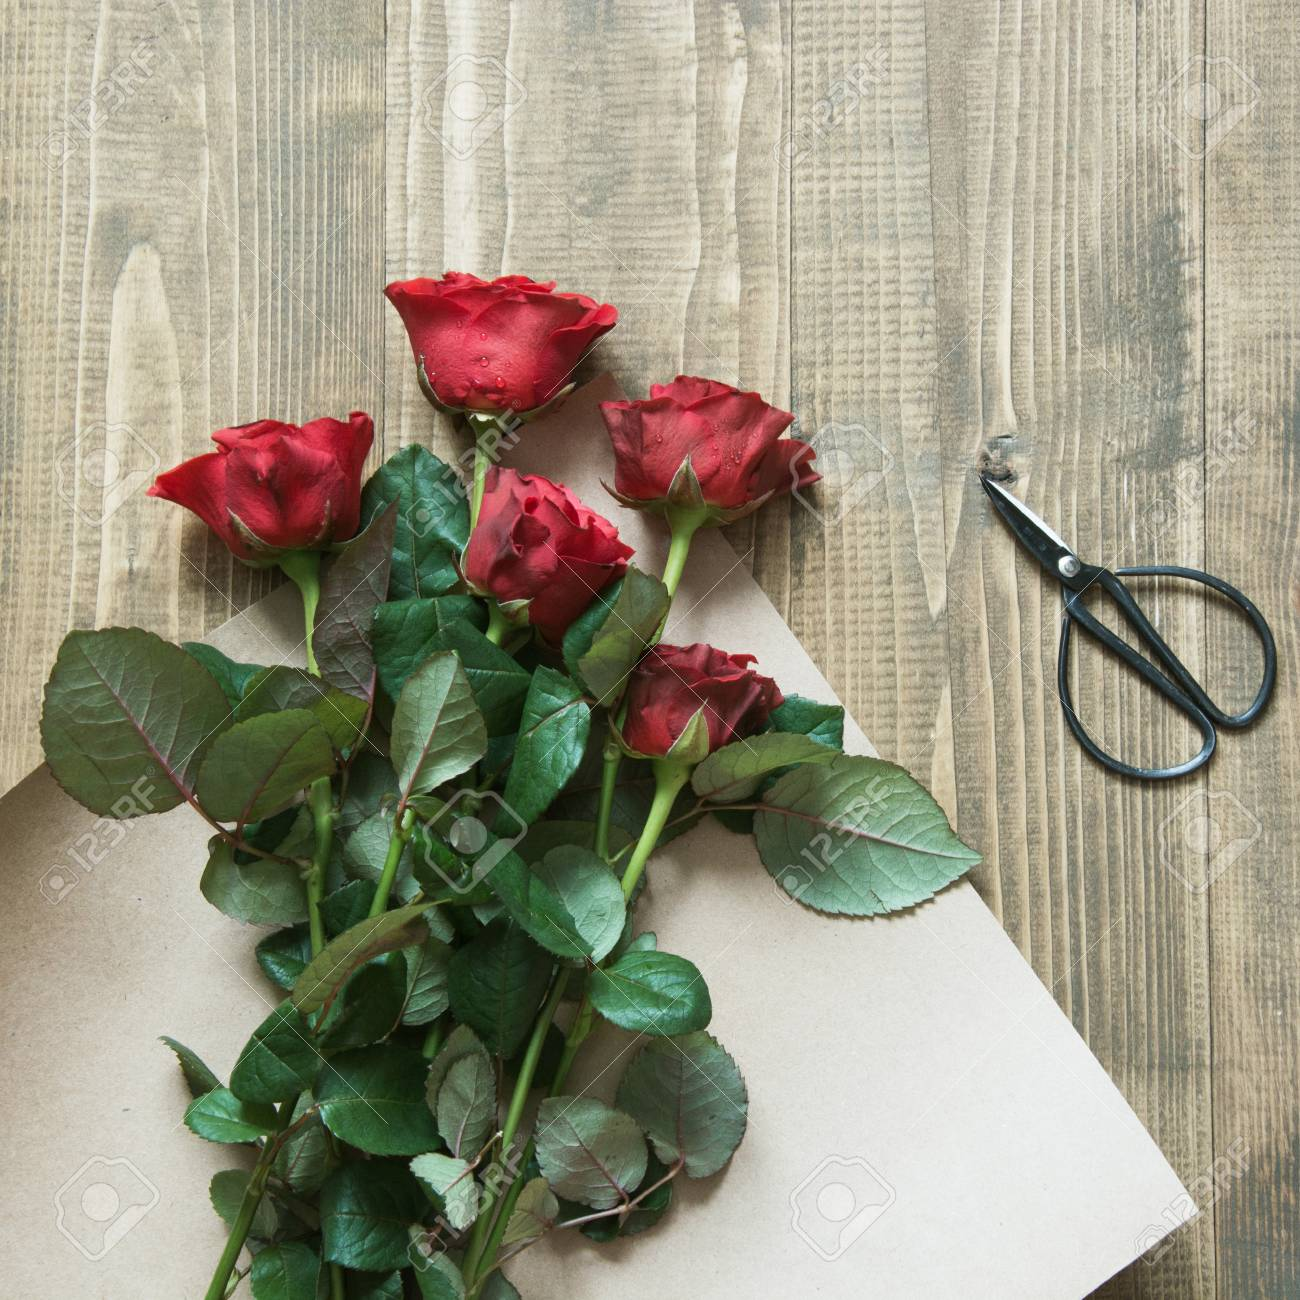 Florist Making A Red Roses Bouquet Wrapping In Kraft Paper On